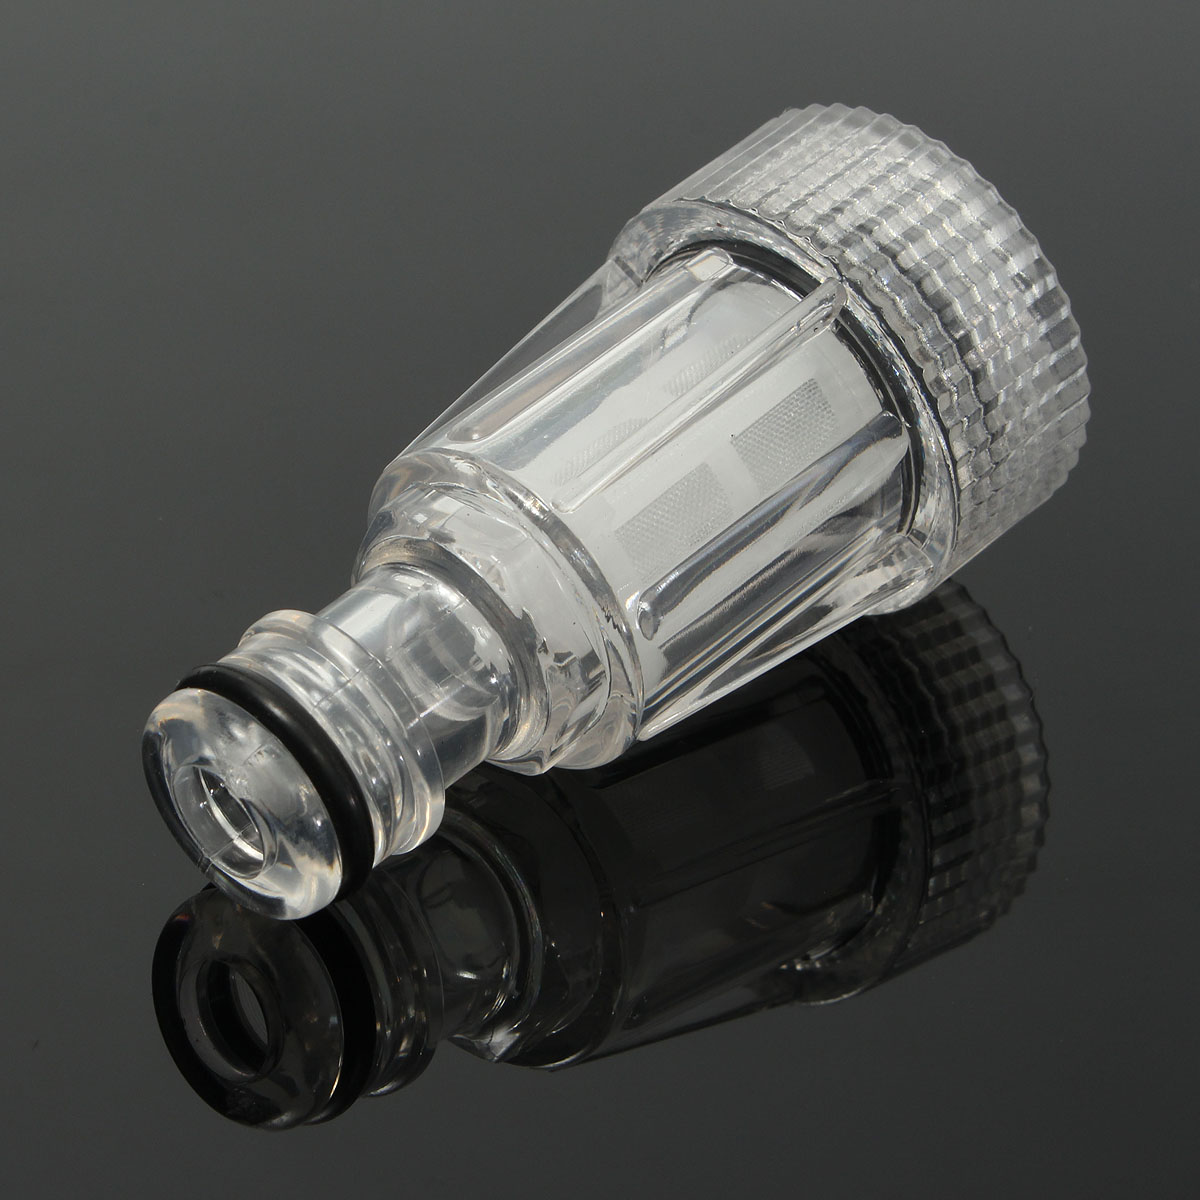 Car Washing Machine Water Filter High-pressure Connection Fitting For K K2-K7 Series Pressure Washers